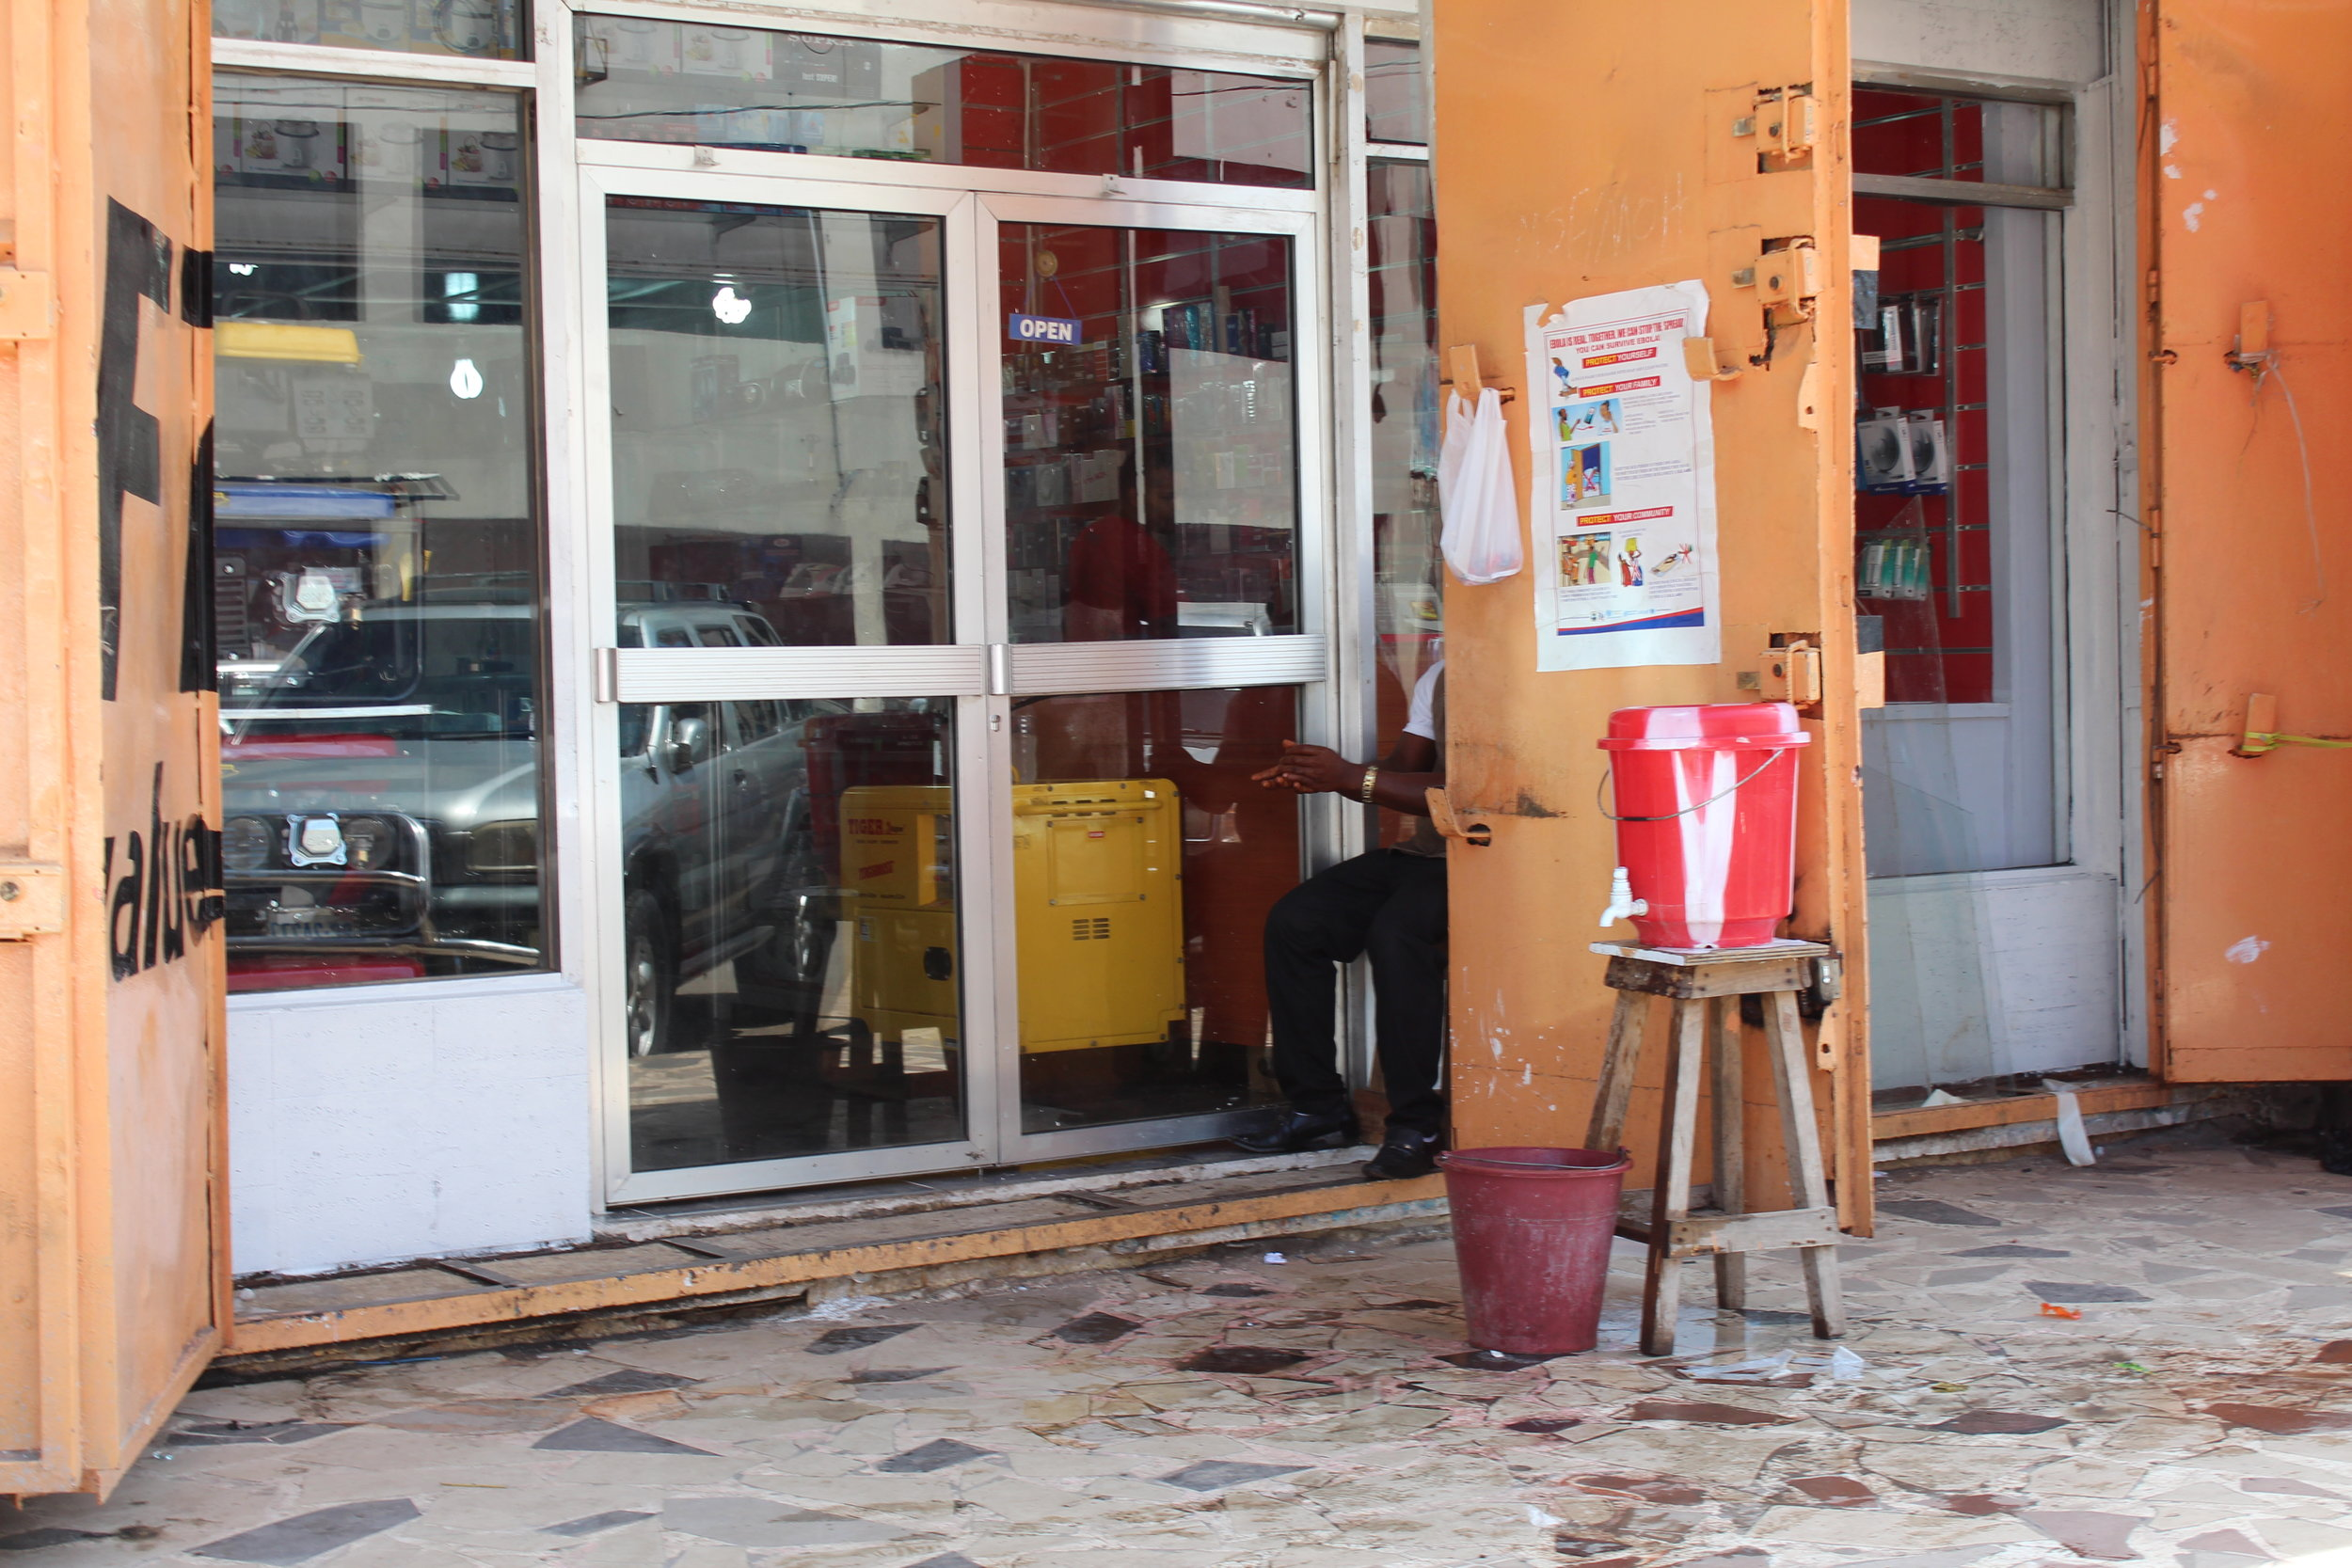 Every shop and public space in Monrovia had chlorine handwash facilities, visitors were expected to use before entry..JPG